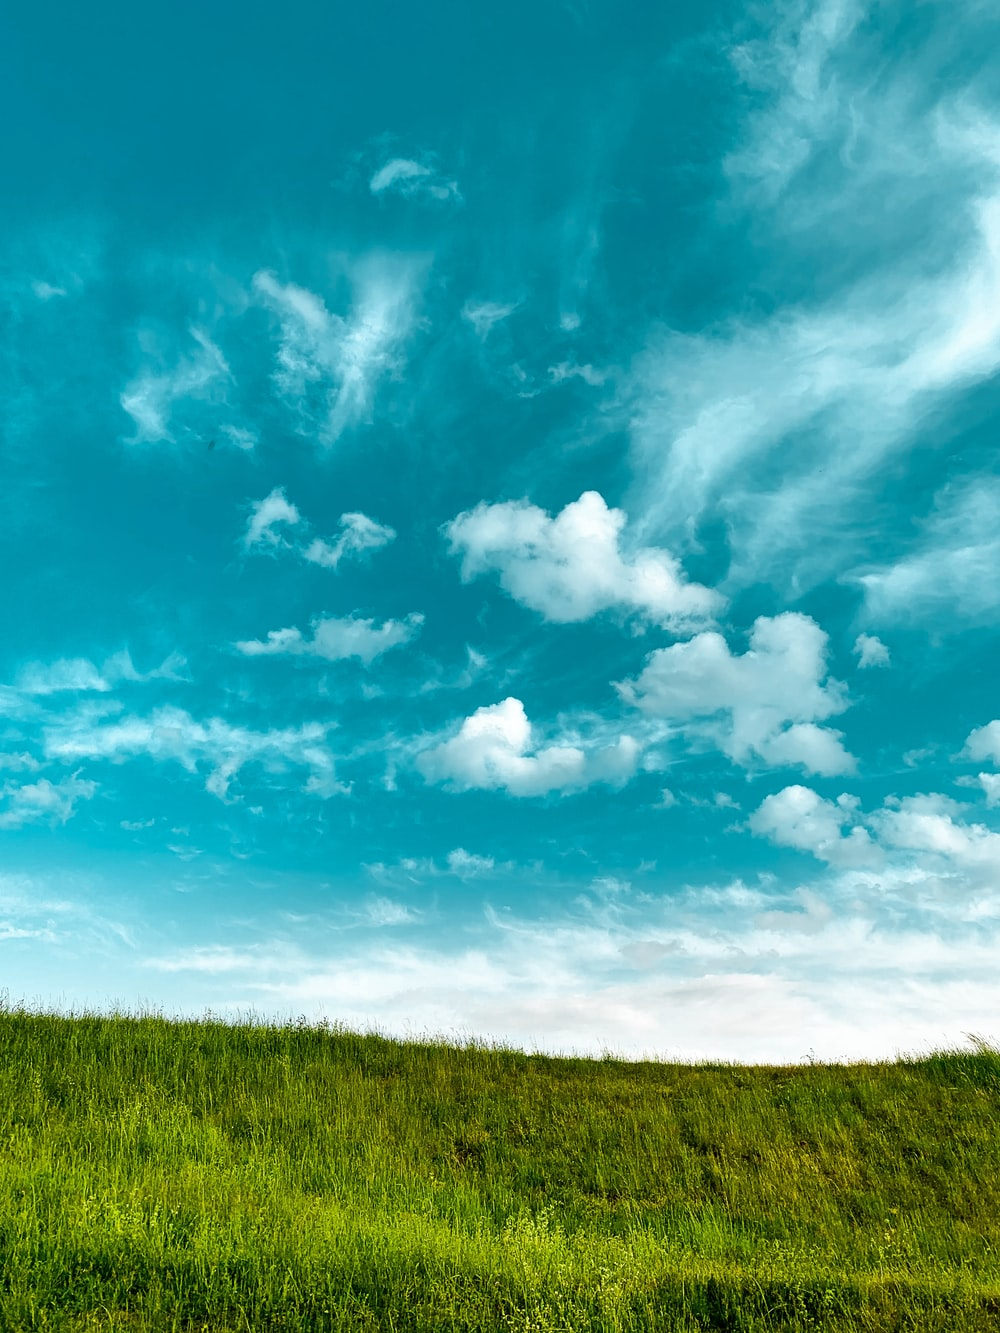 Grass And Sky Pictures Download Free Images On Unsplash Wallpaper grass field rainbow hill fog